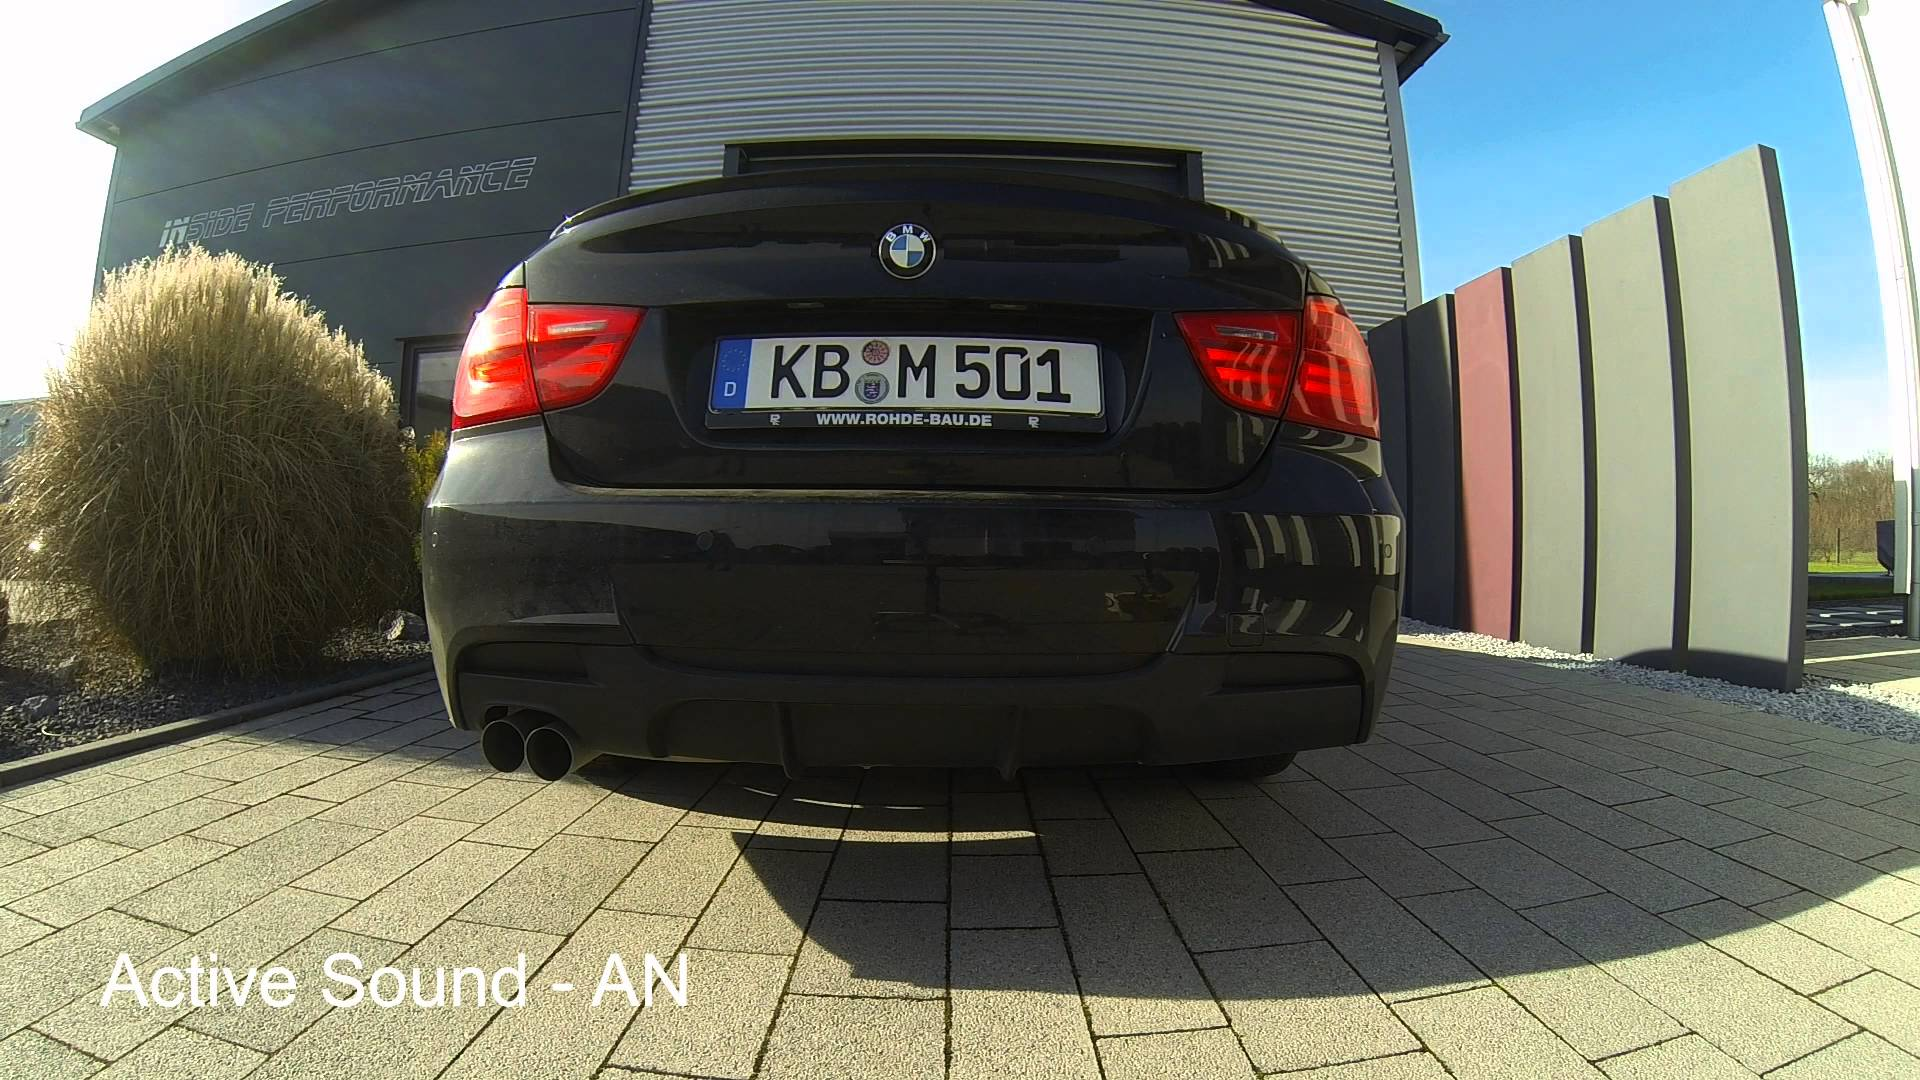 Own An E90 3 Series Diesel This Active Exhaust System Will Fix The Sound Autoevolution